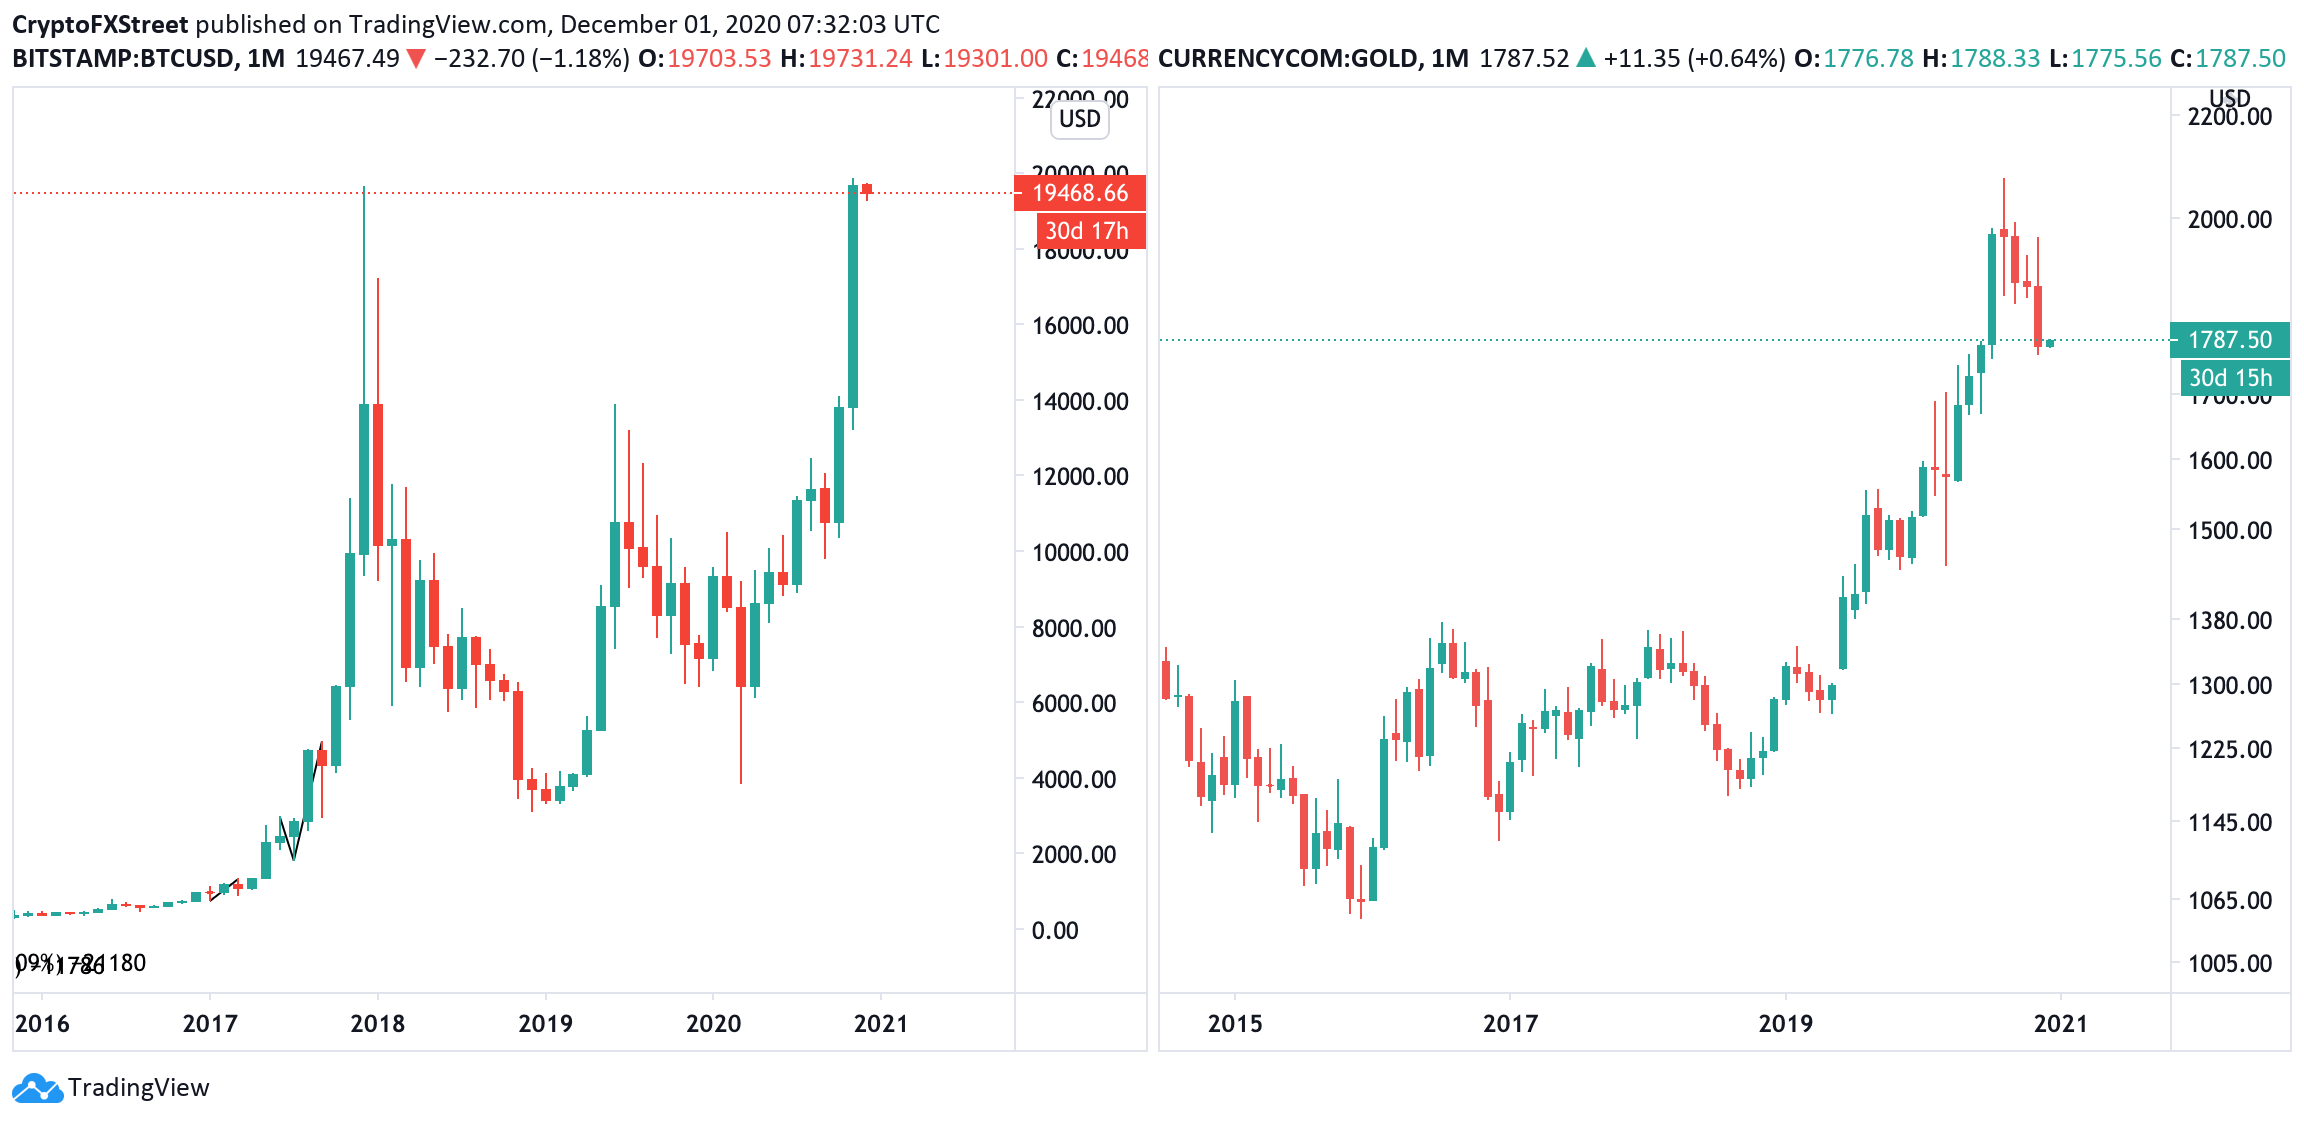 Bitcoin and Gold monthly charts